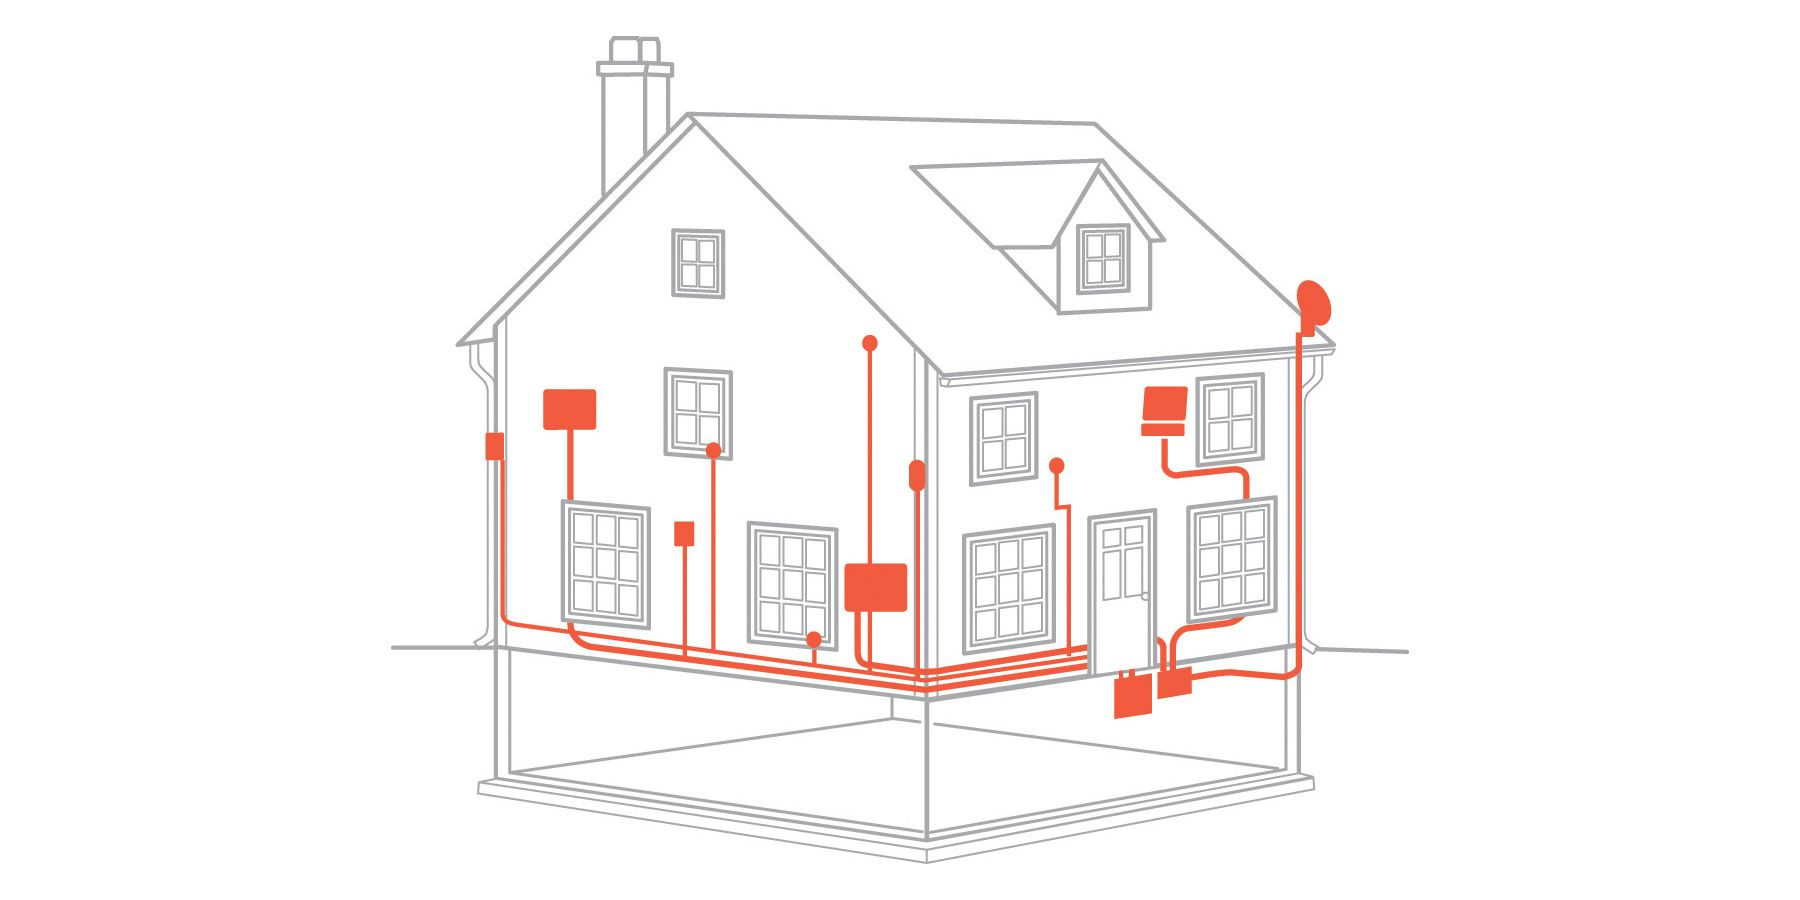 hight resolution of setting up an electrical system for maximum safety and convenience